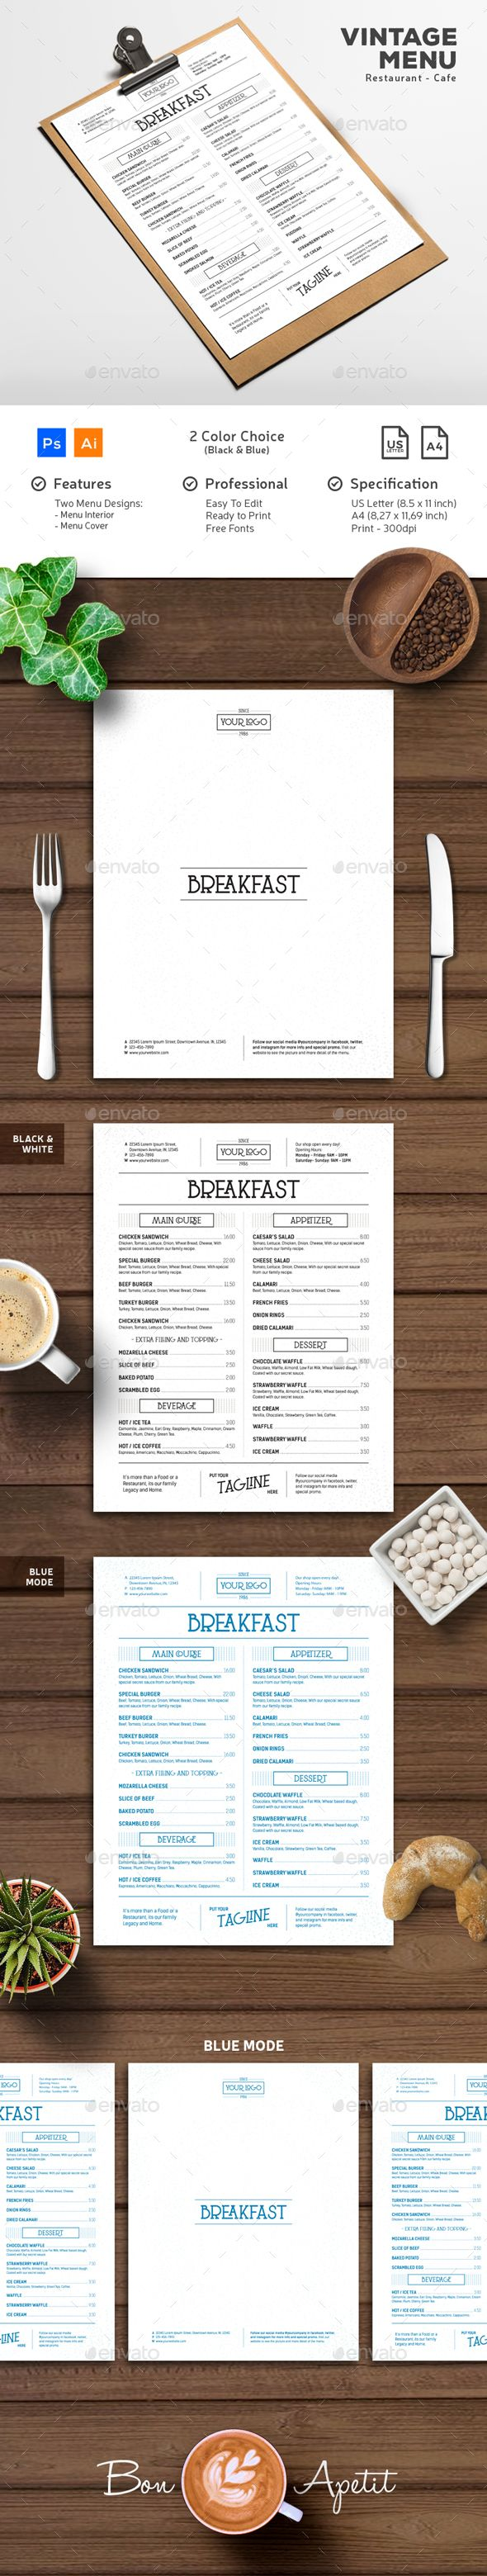 Menu Vintage Typography - Food Menus Print Templates Download here : https://graphicriver.net/item/menu-vintage-typography/19614560?s_rank=36&ref=Al-fatih